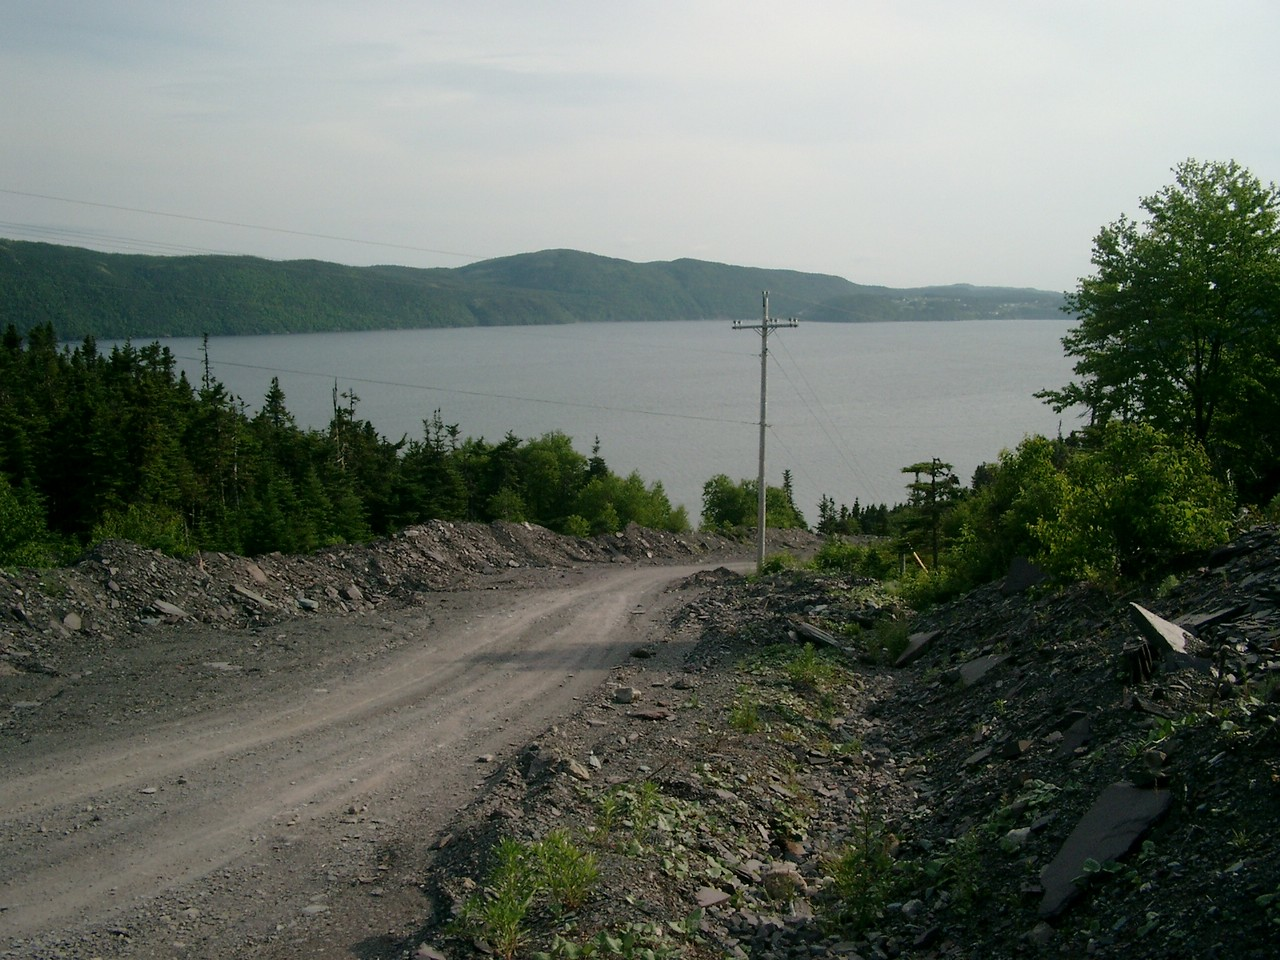 Road to slate mine and wreck